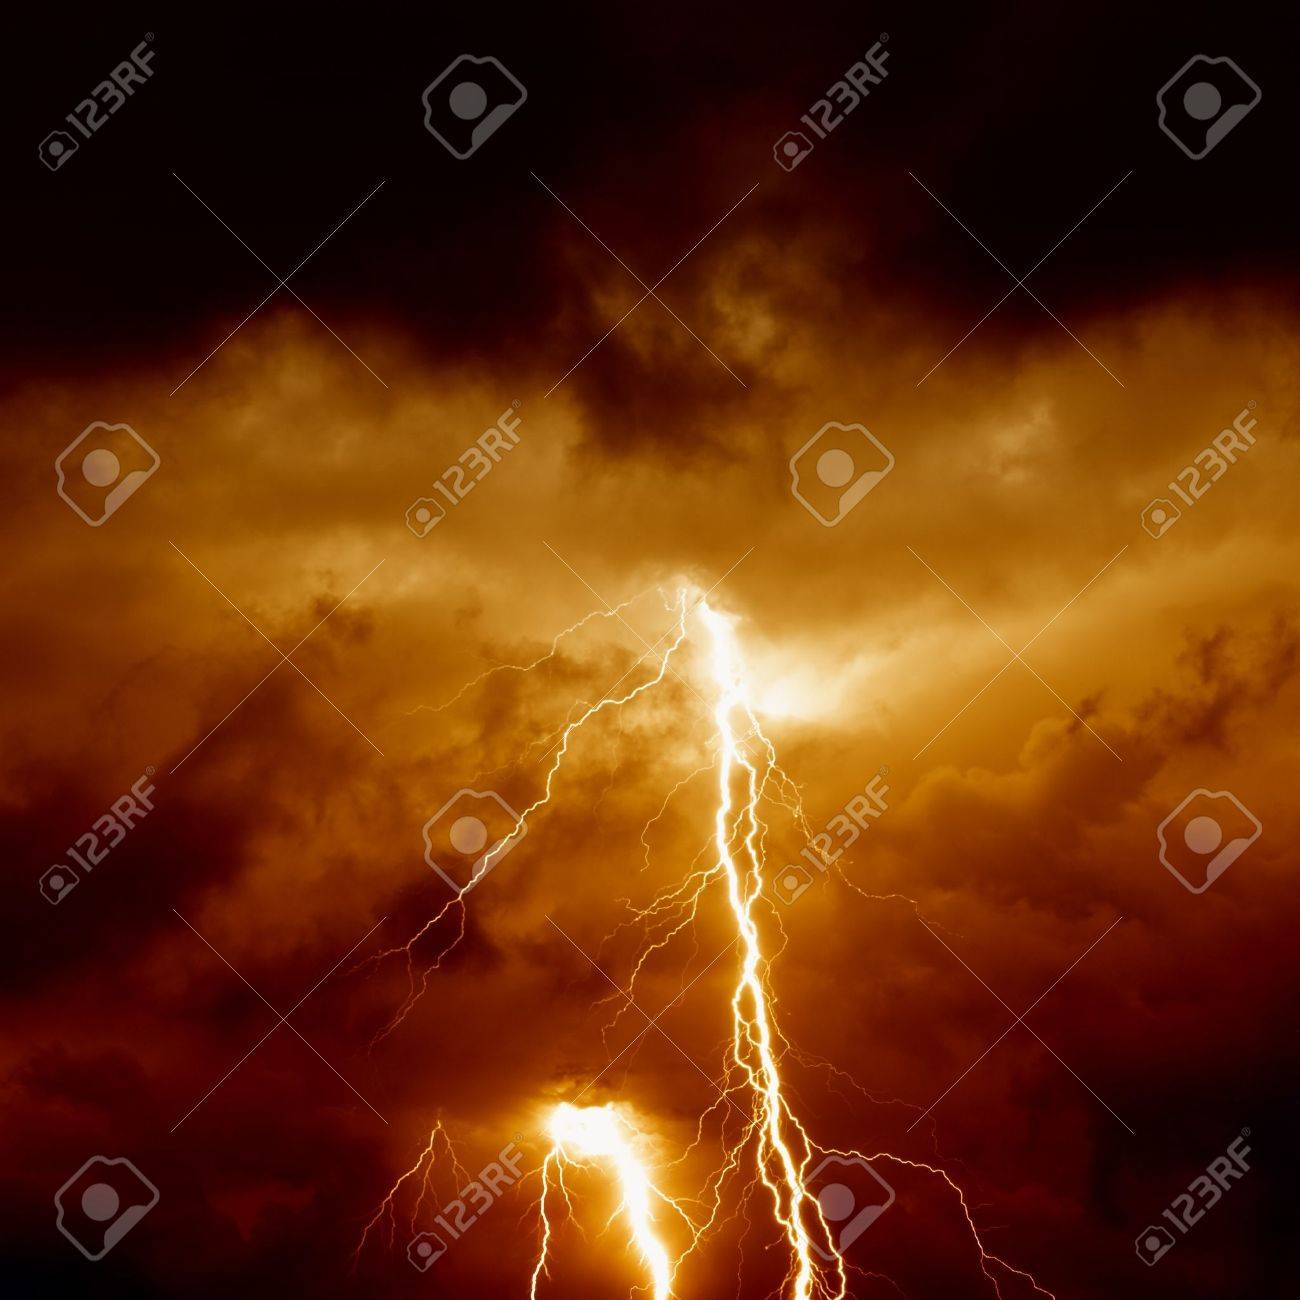 Lightning Storm Images Stock Pictures Royalty Free Lightning